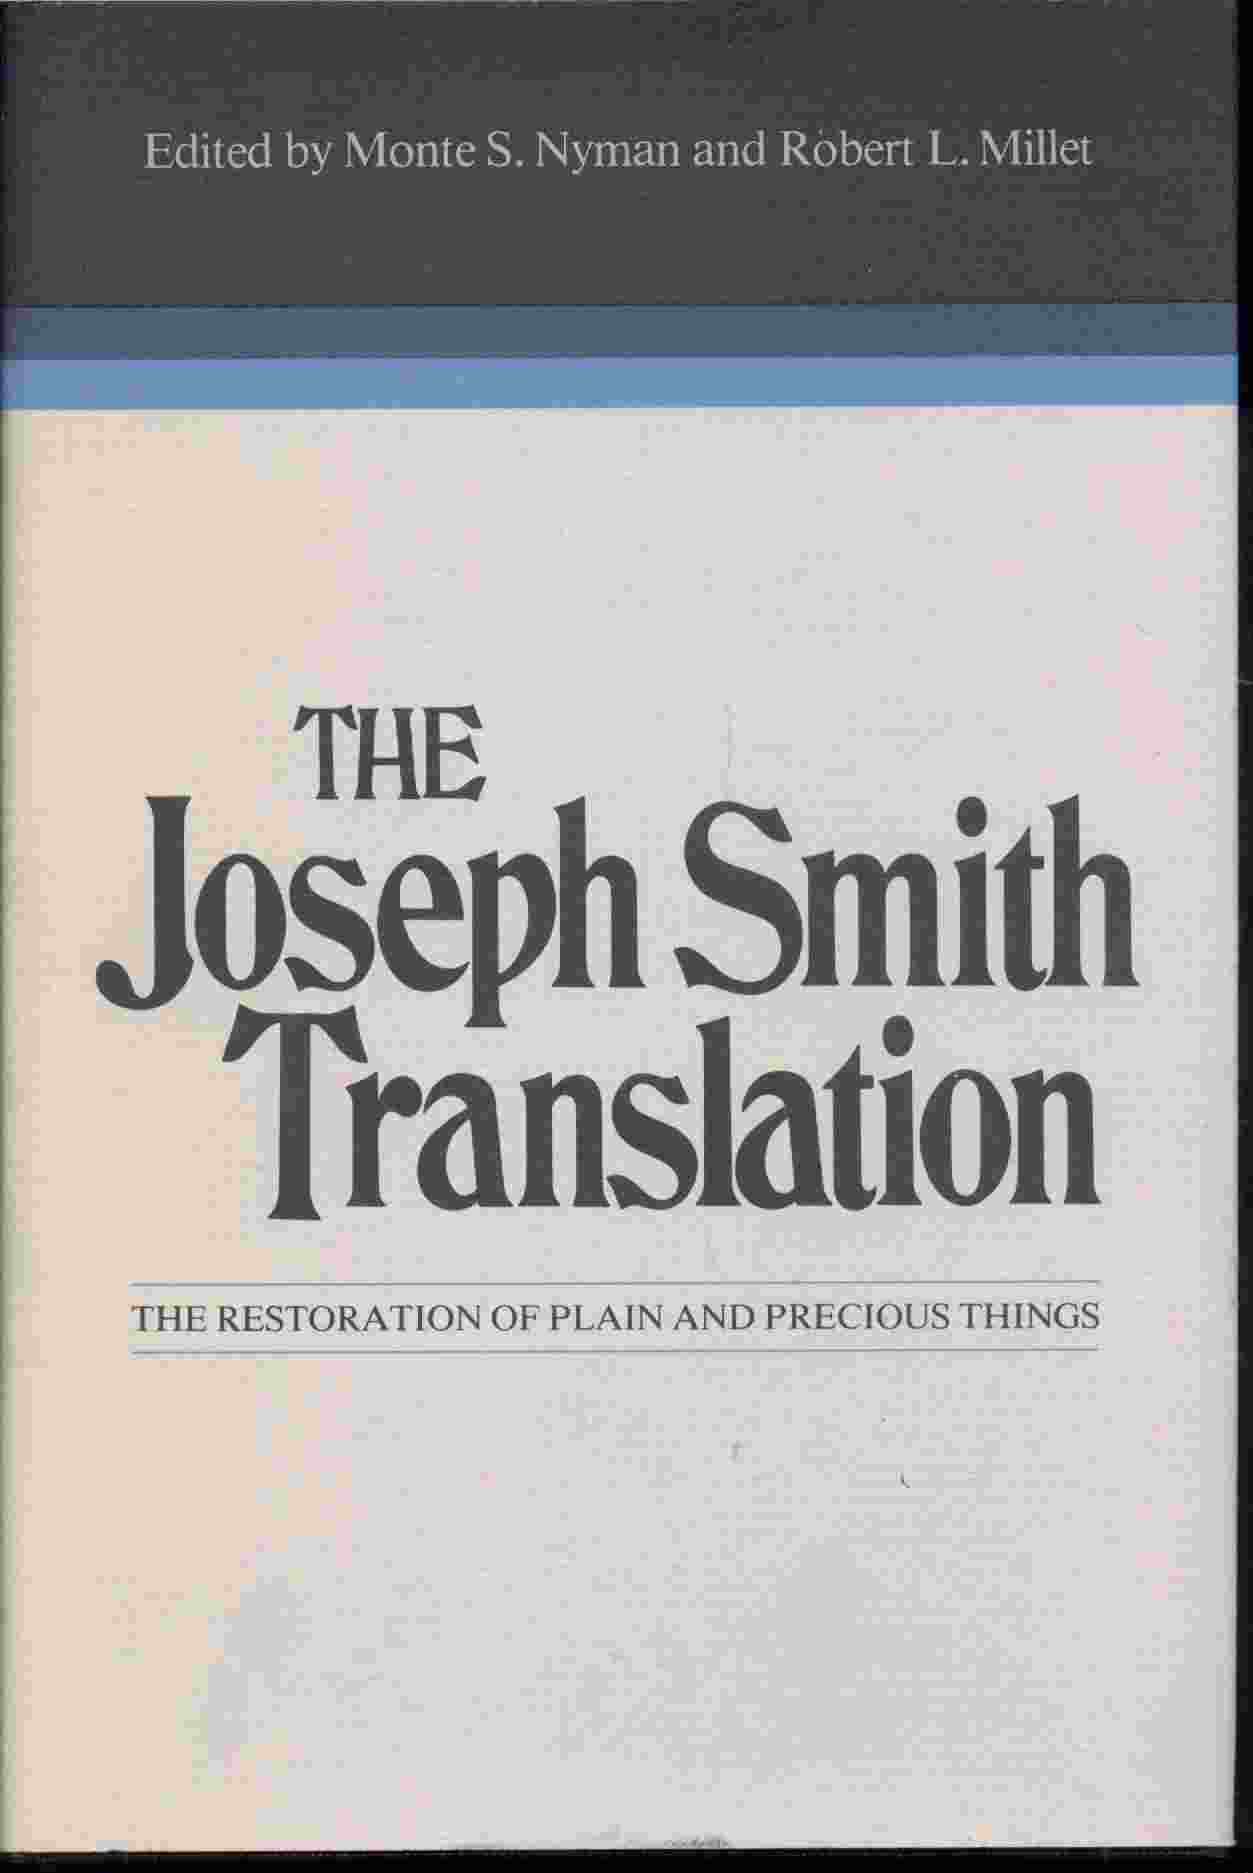 Image for THE JOSEPH SMITH TRANSLATION - The Restoration of Plain and Precious Things